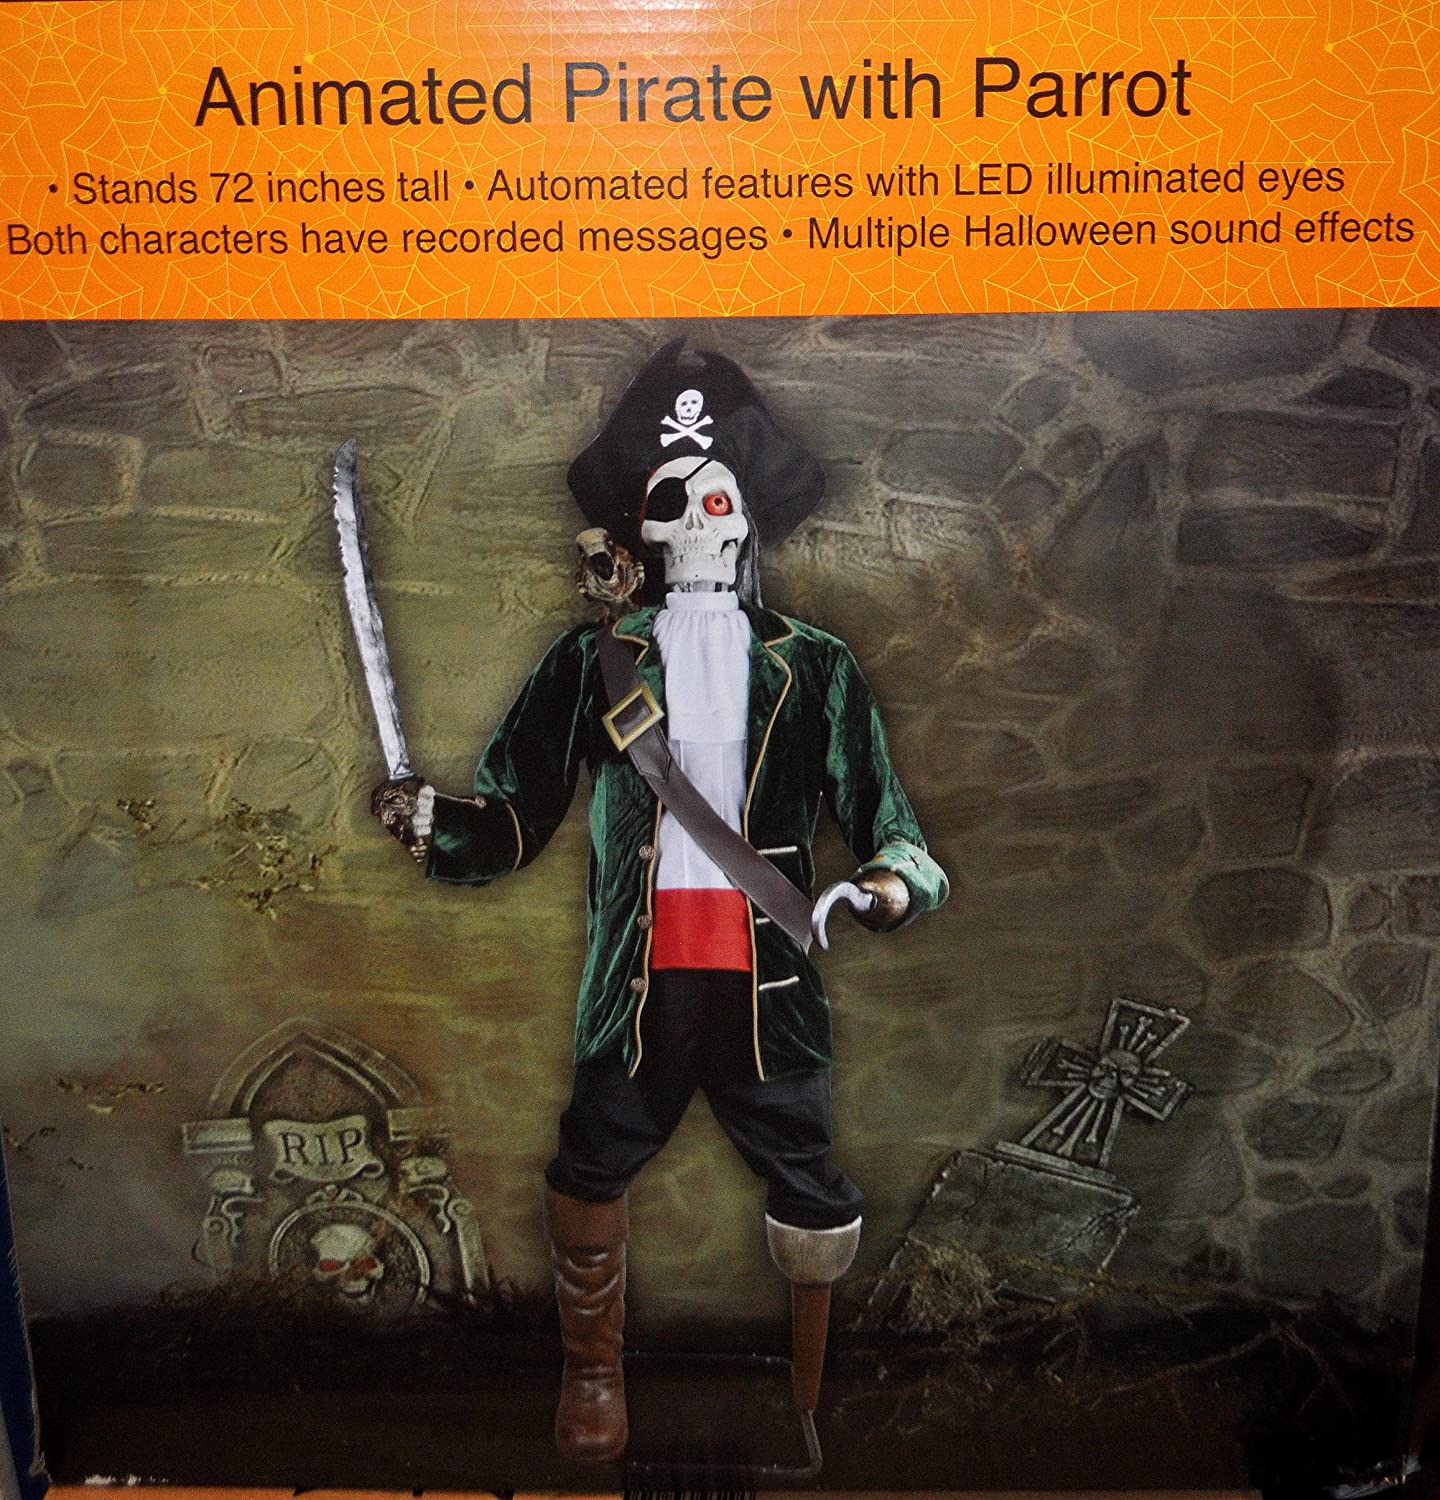 amazoncom lifesize animated talking pirate skeleton with talking parrot halloween prop patio lawn garden - Talking Halloween Skeleton